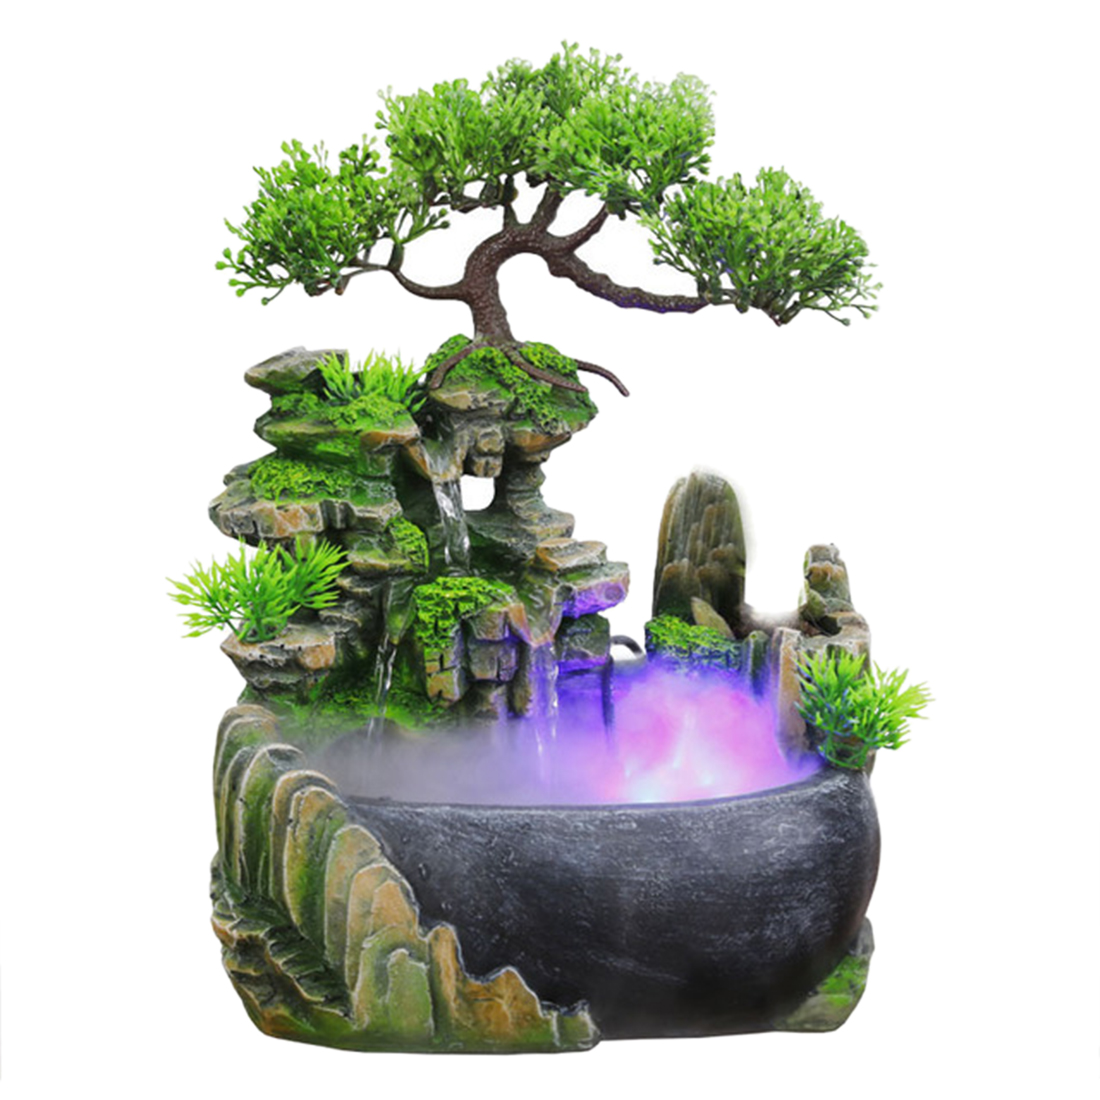 Desktop Humidifier Waterfall Rockery Fountain Flowing Water Mini Fish Pond with Fog for Home Decor Drop Shipping - US Plug